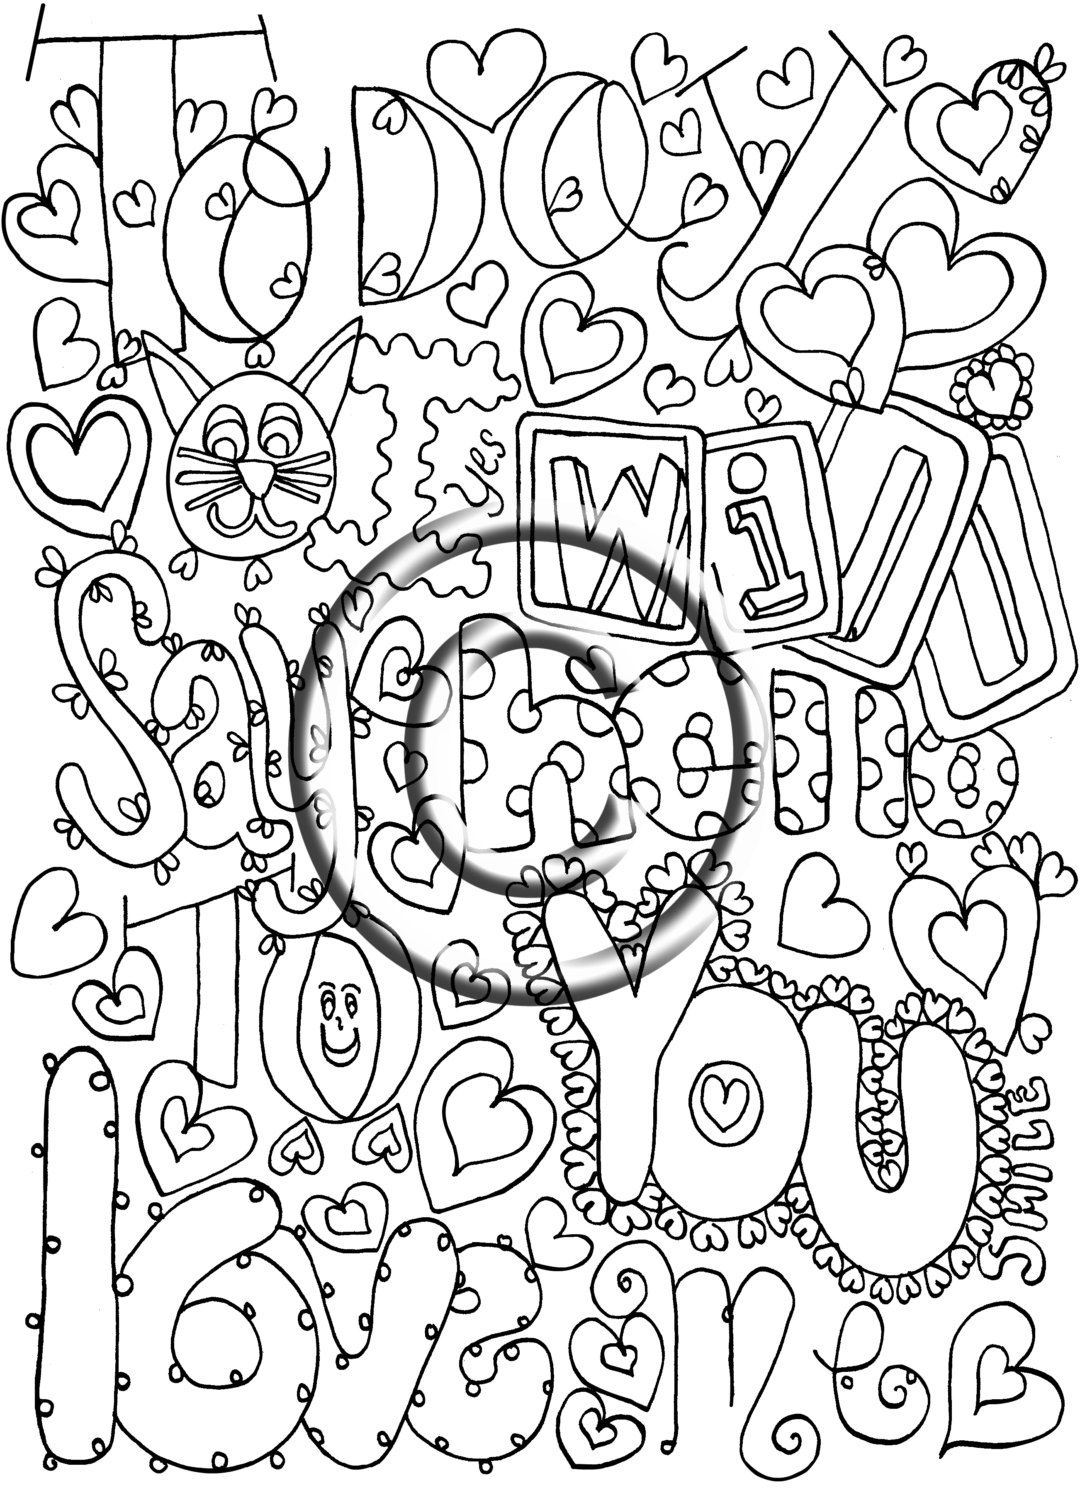 Instant PDF Download Coloring Page, Digital Stamp, Groovy